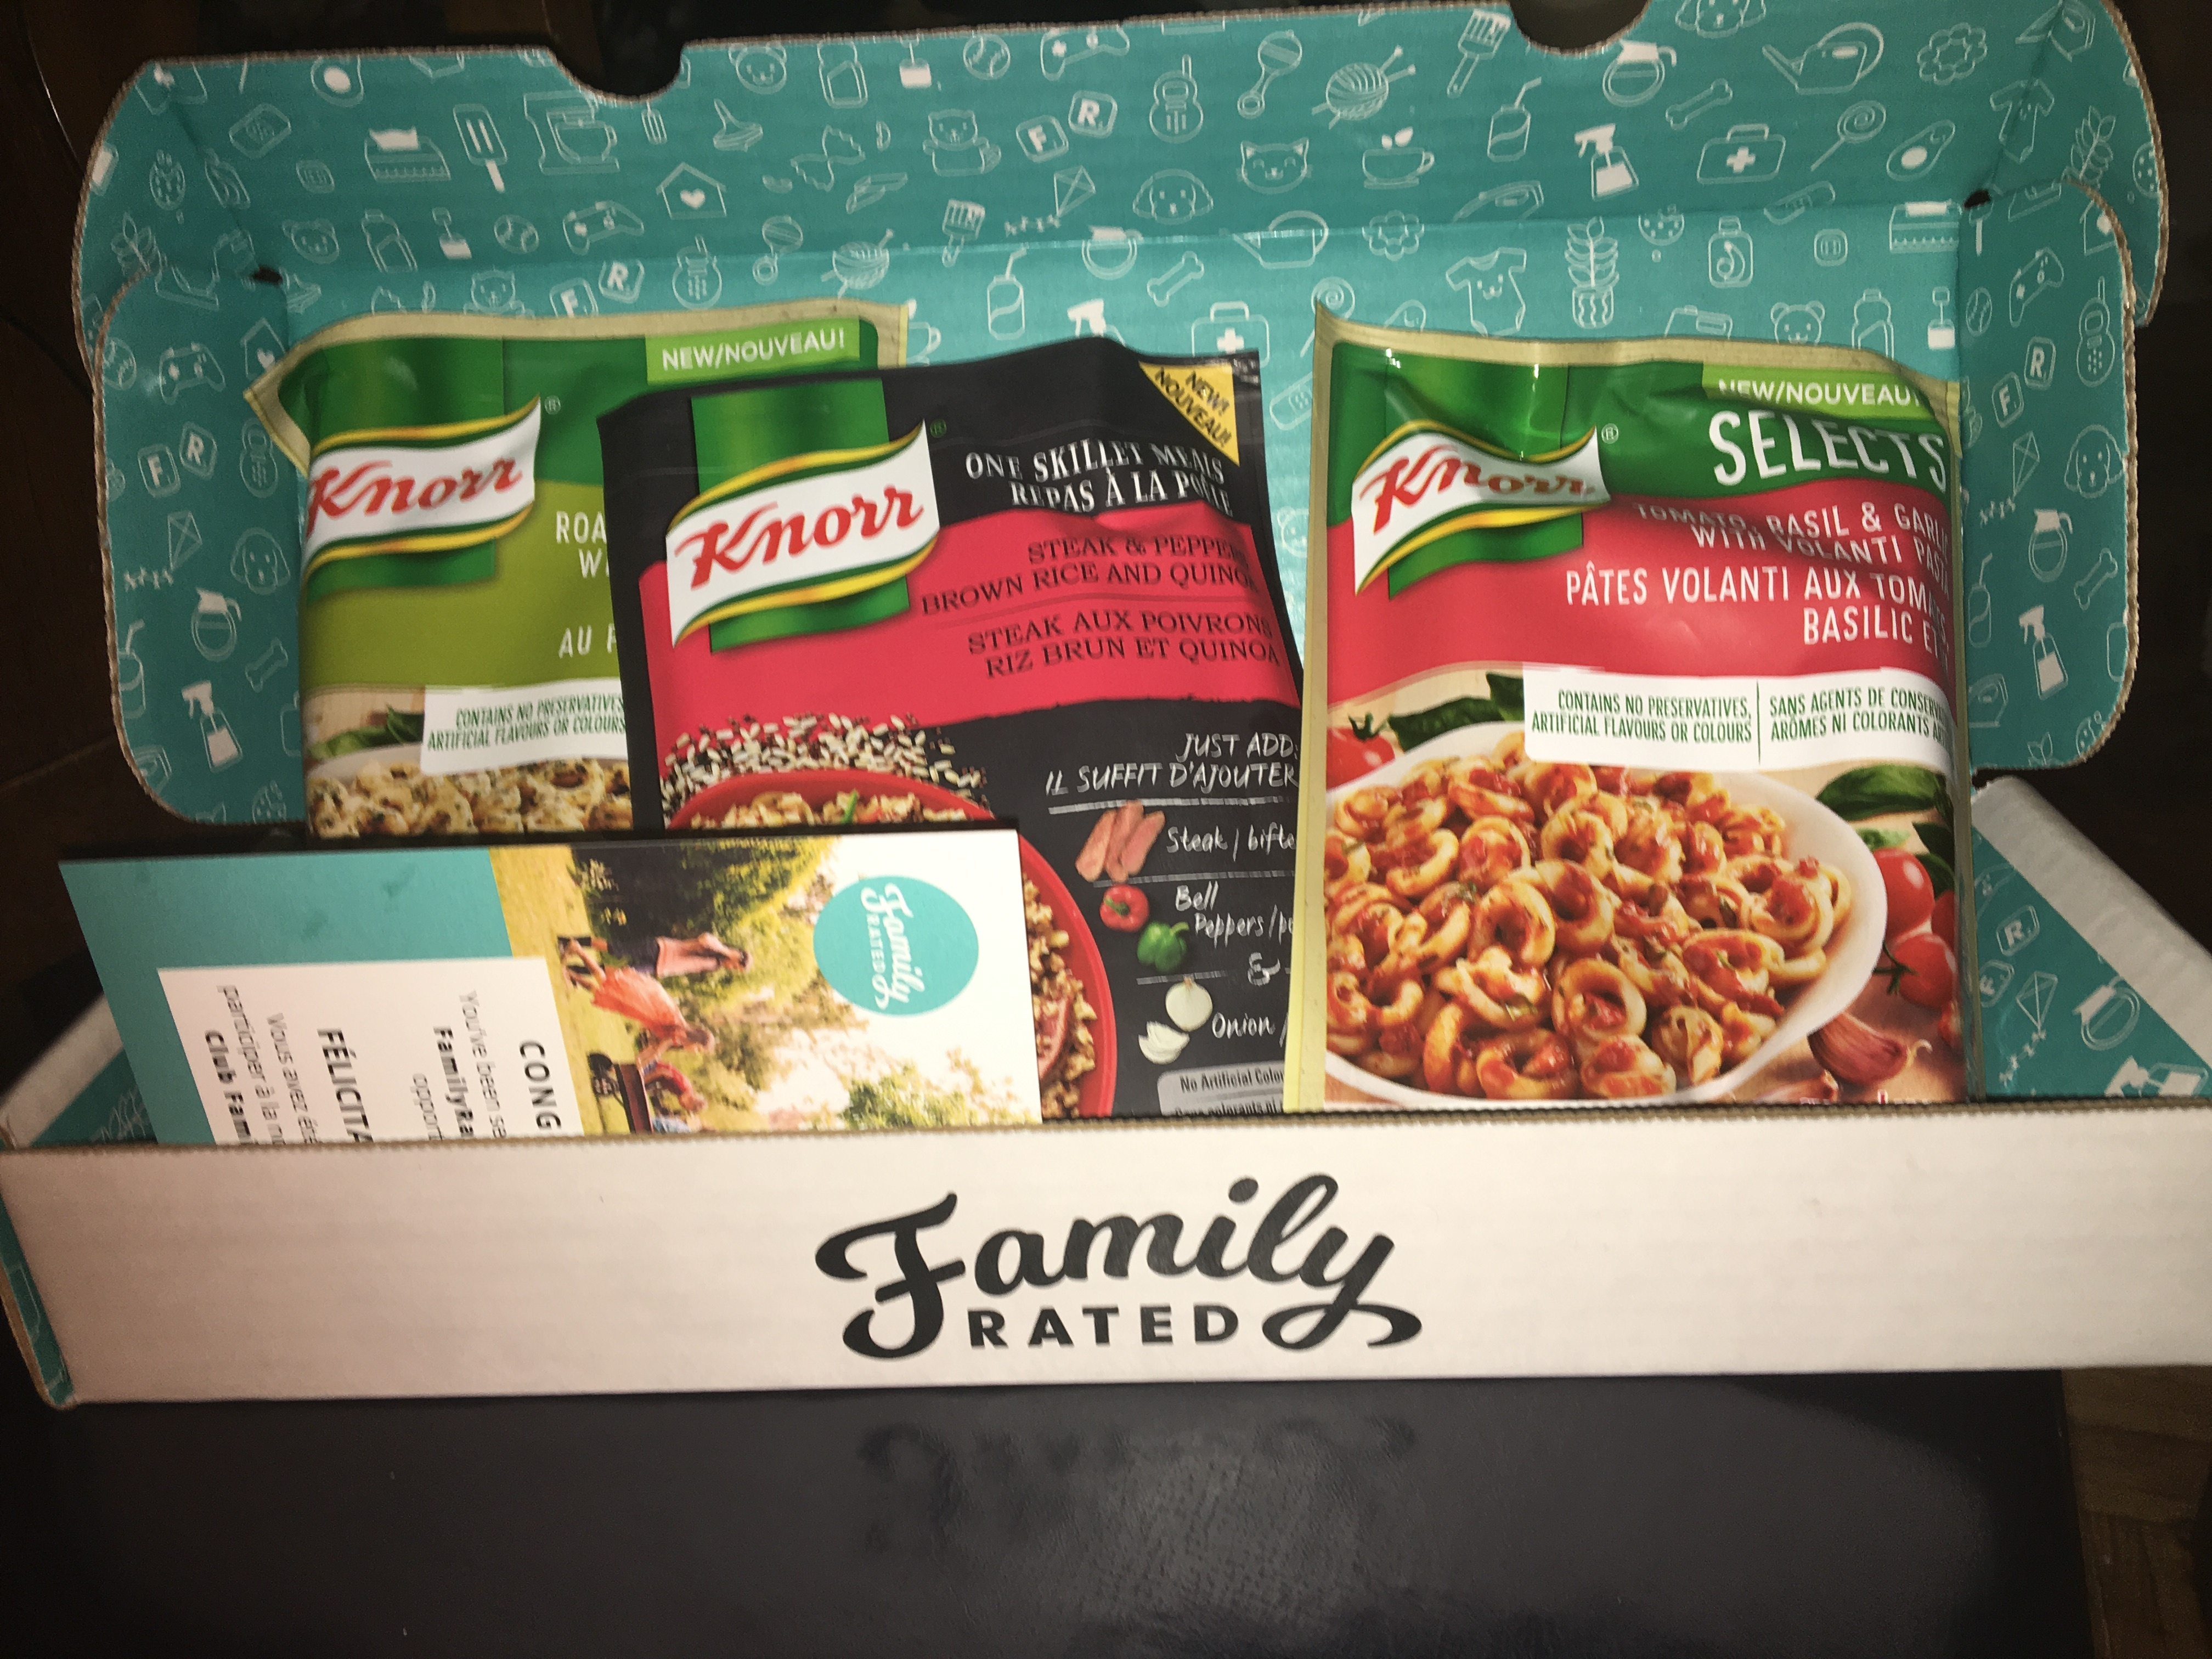 Knorr One Skillet Meals in Steak & Peppers Brown Rice and